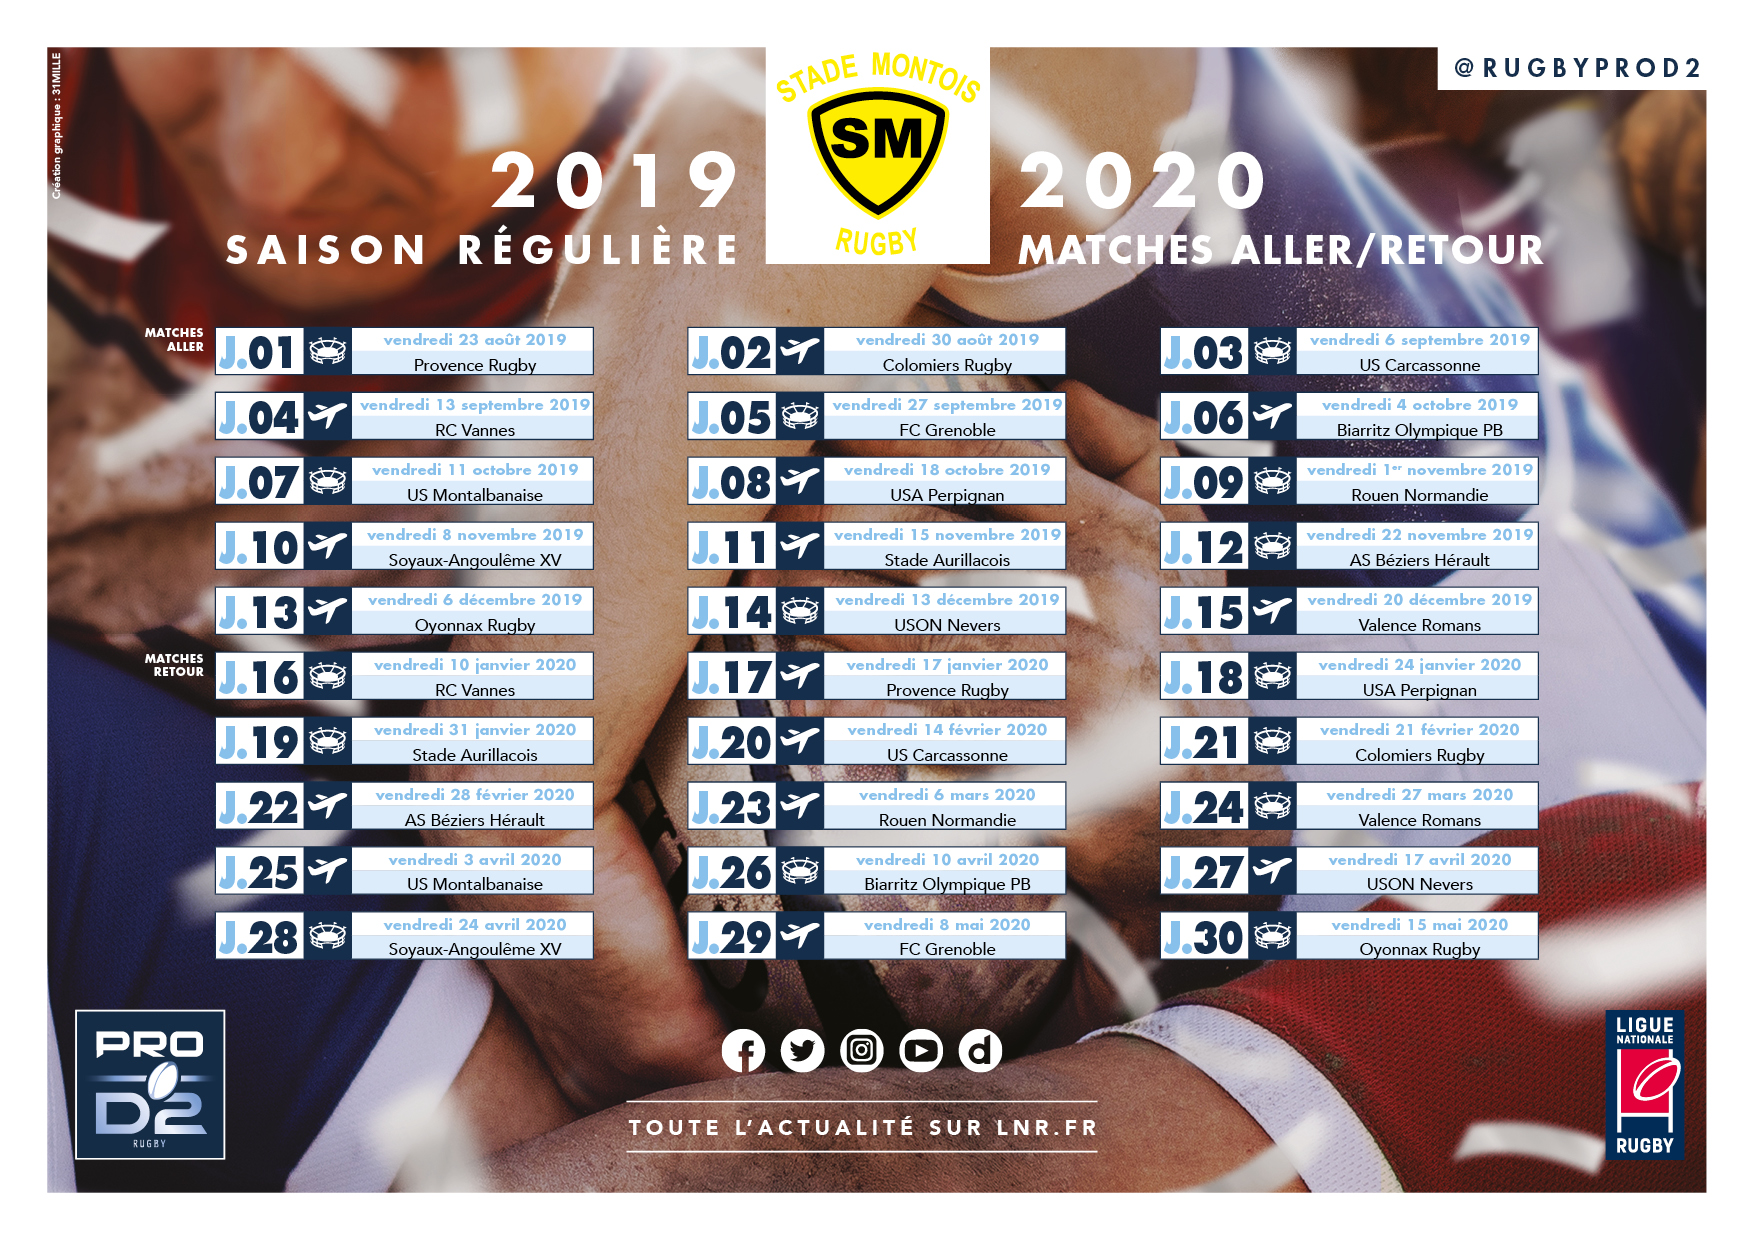 Calendrier 2020 Rugby.Calendrier 2019 2020 Stade Montois Rugby